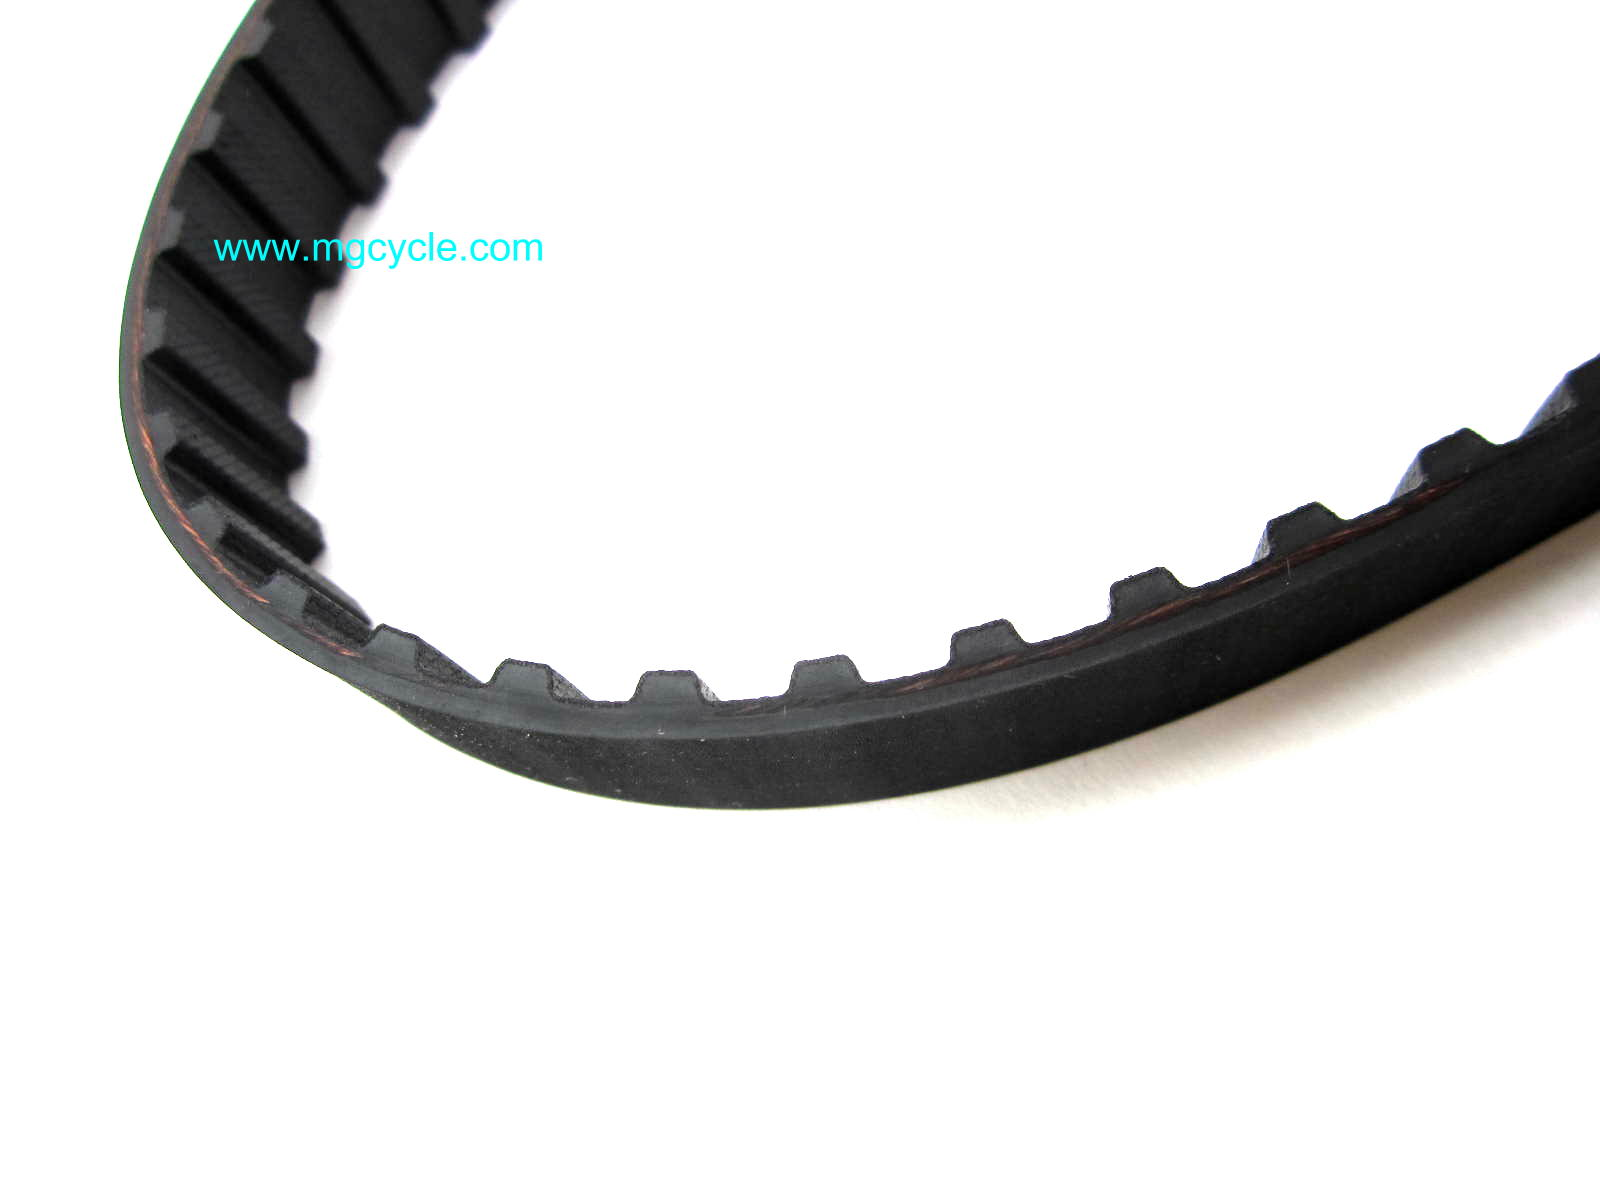 Cam belt for Ducati 066029090 Square tooth profile